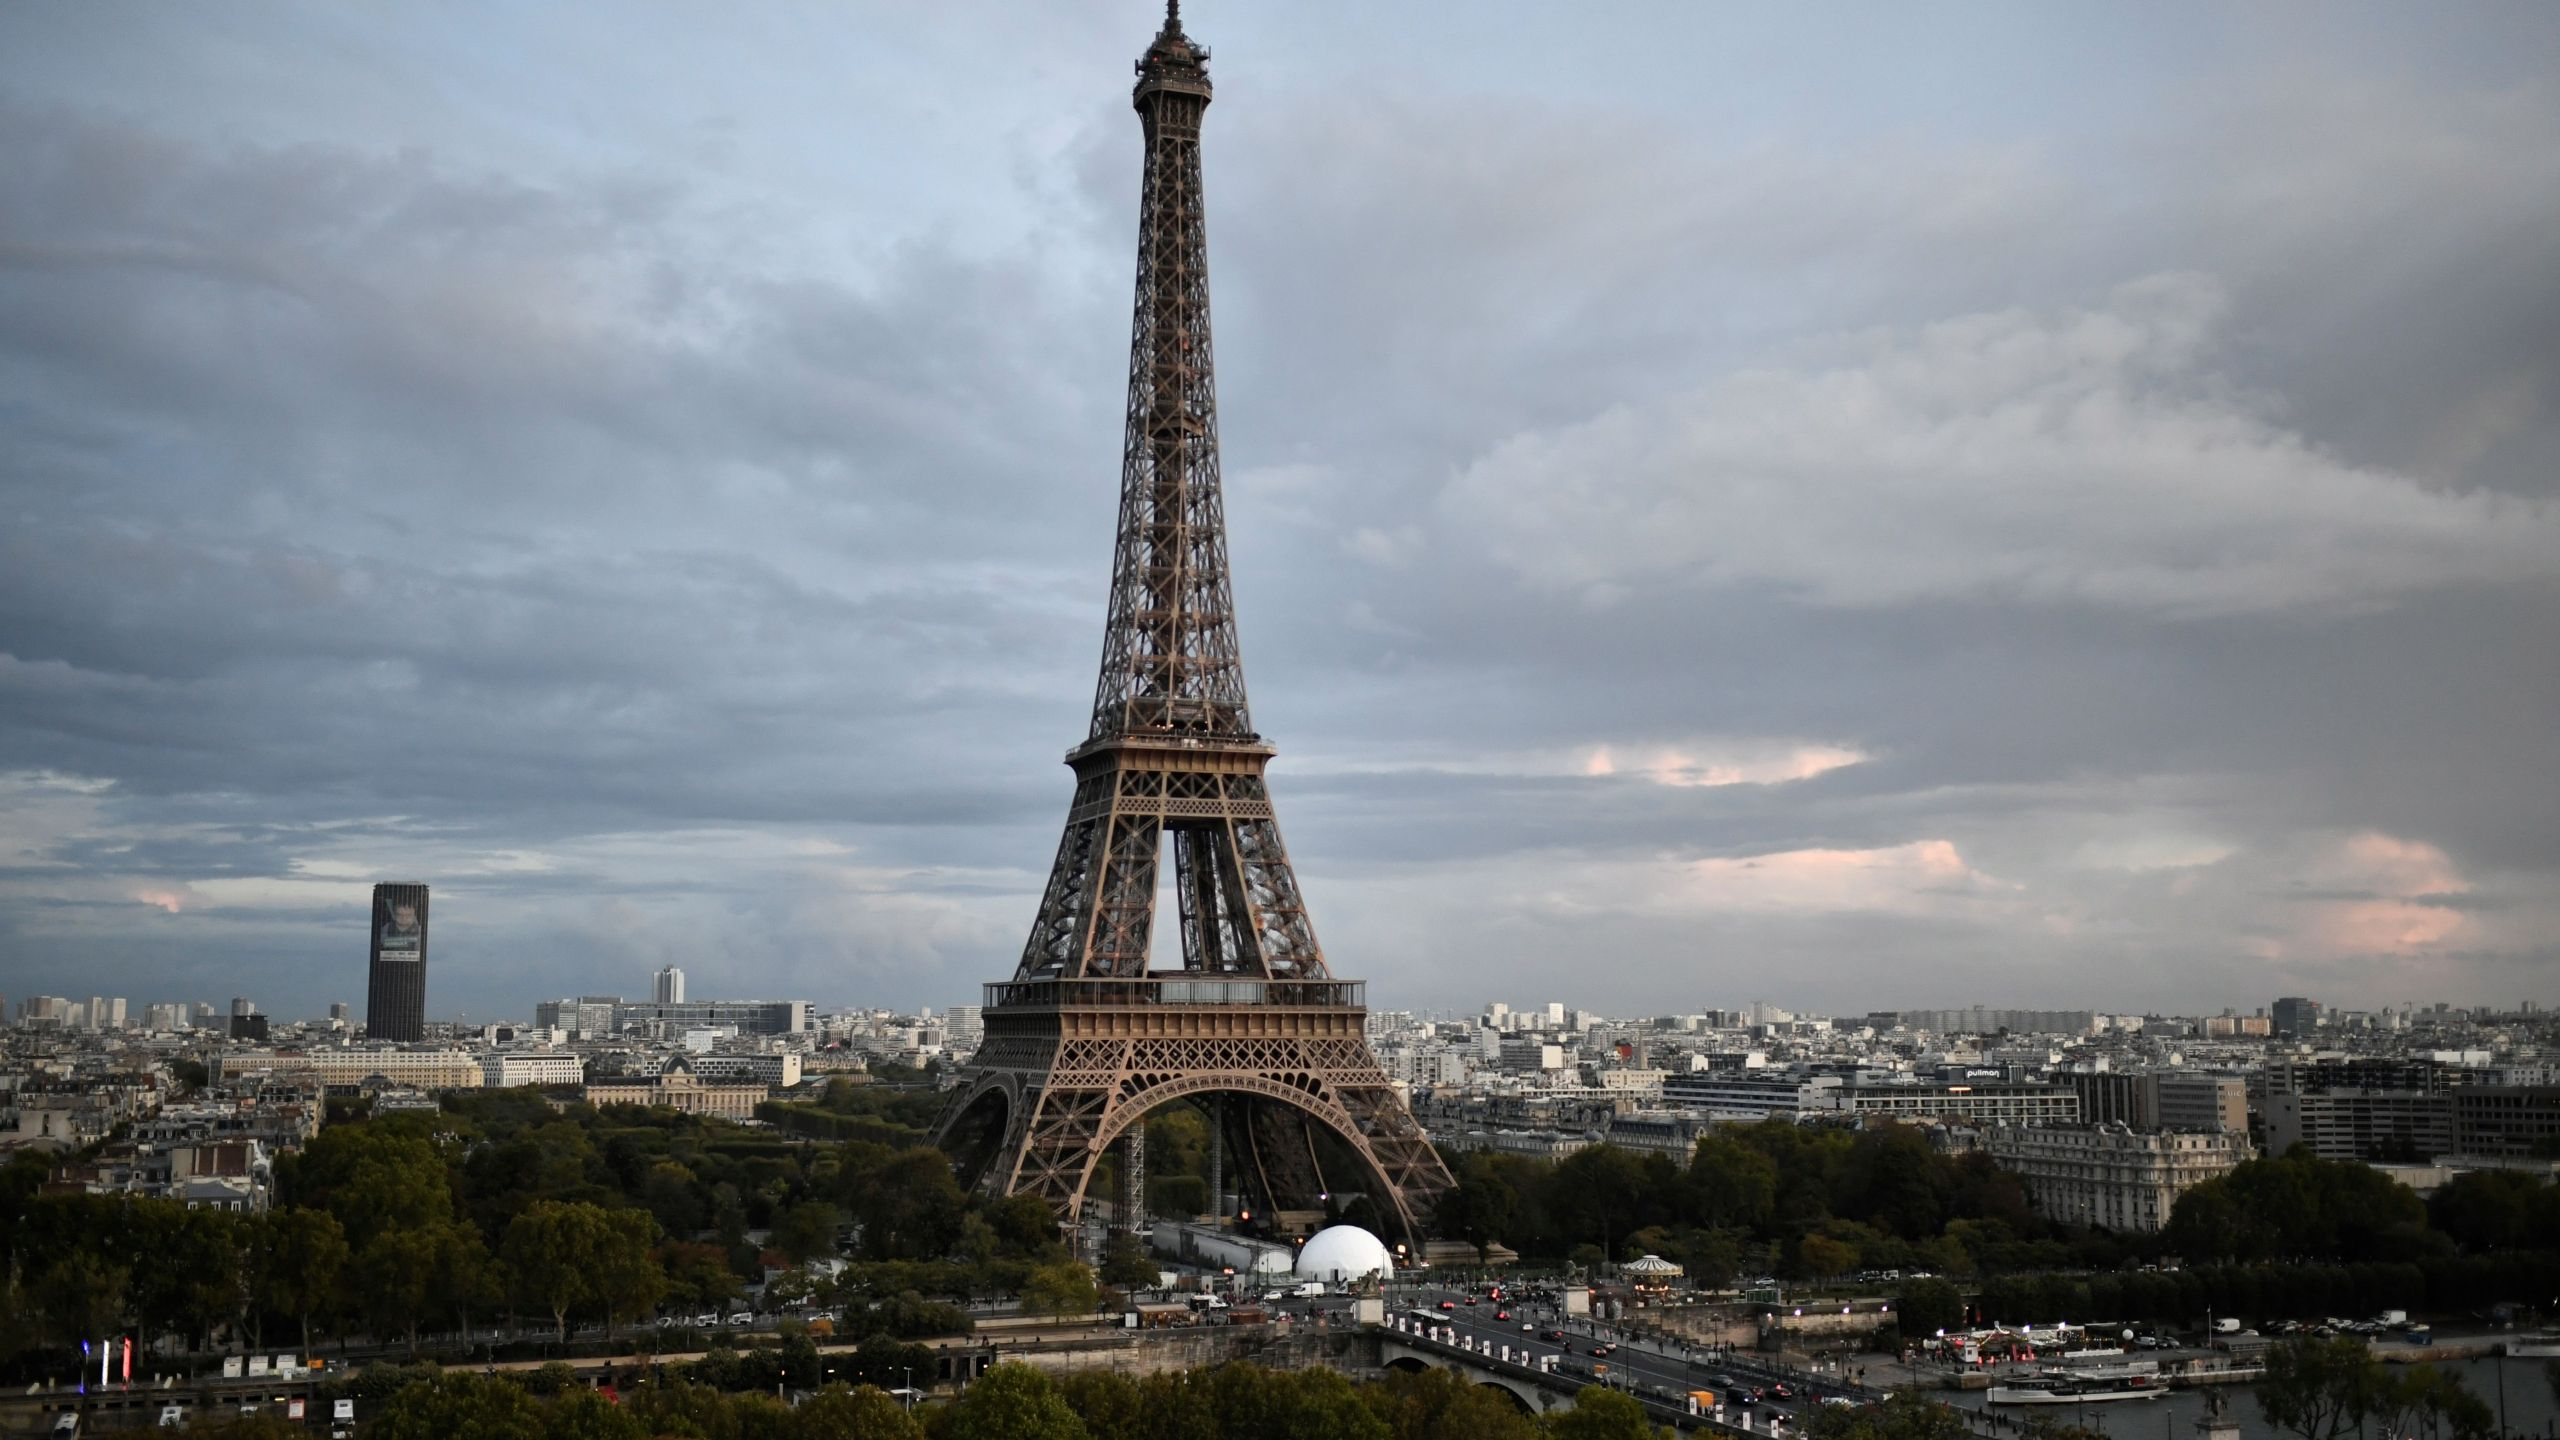 A picture taken on Oct. 1, 2019, shows the Eiffel tower in Paris. (Credit: STEPHANE DE SAKUTIN/AFP via Getty Images)